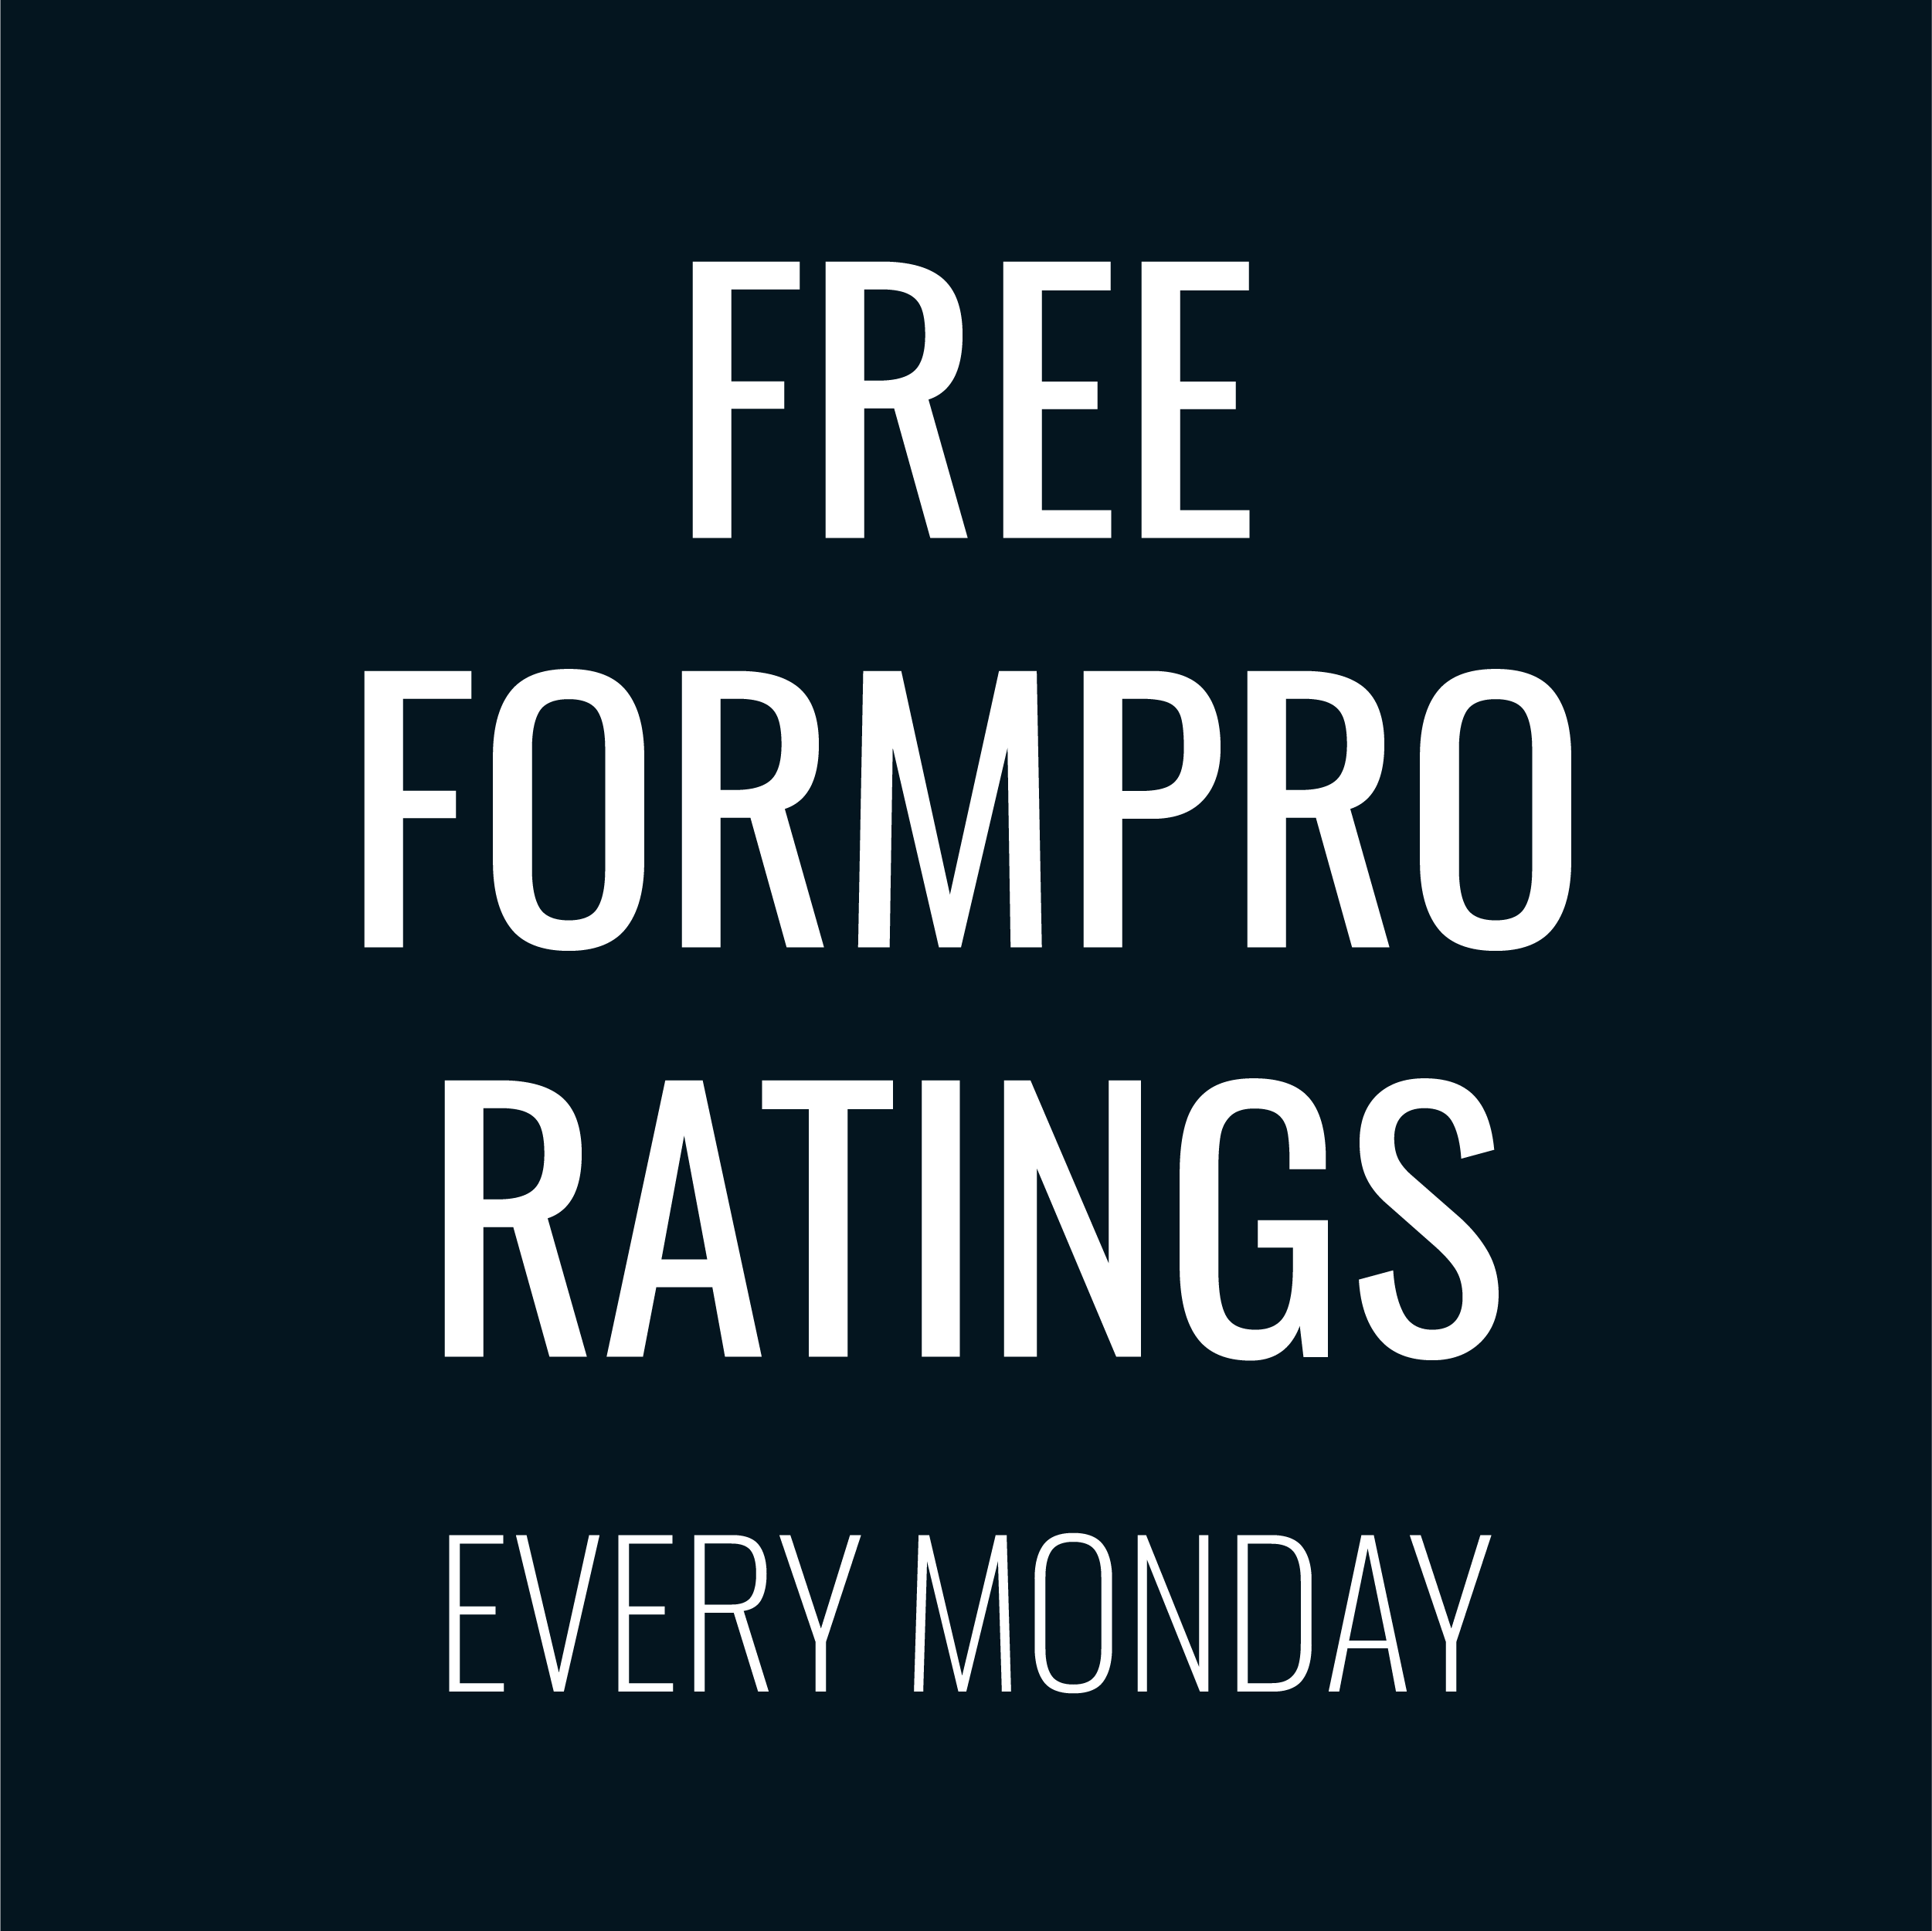 Free Greyhound Ratings and Sectionals Monday!